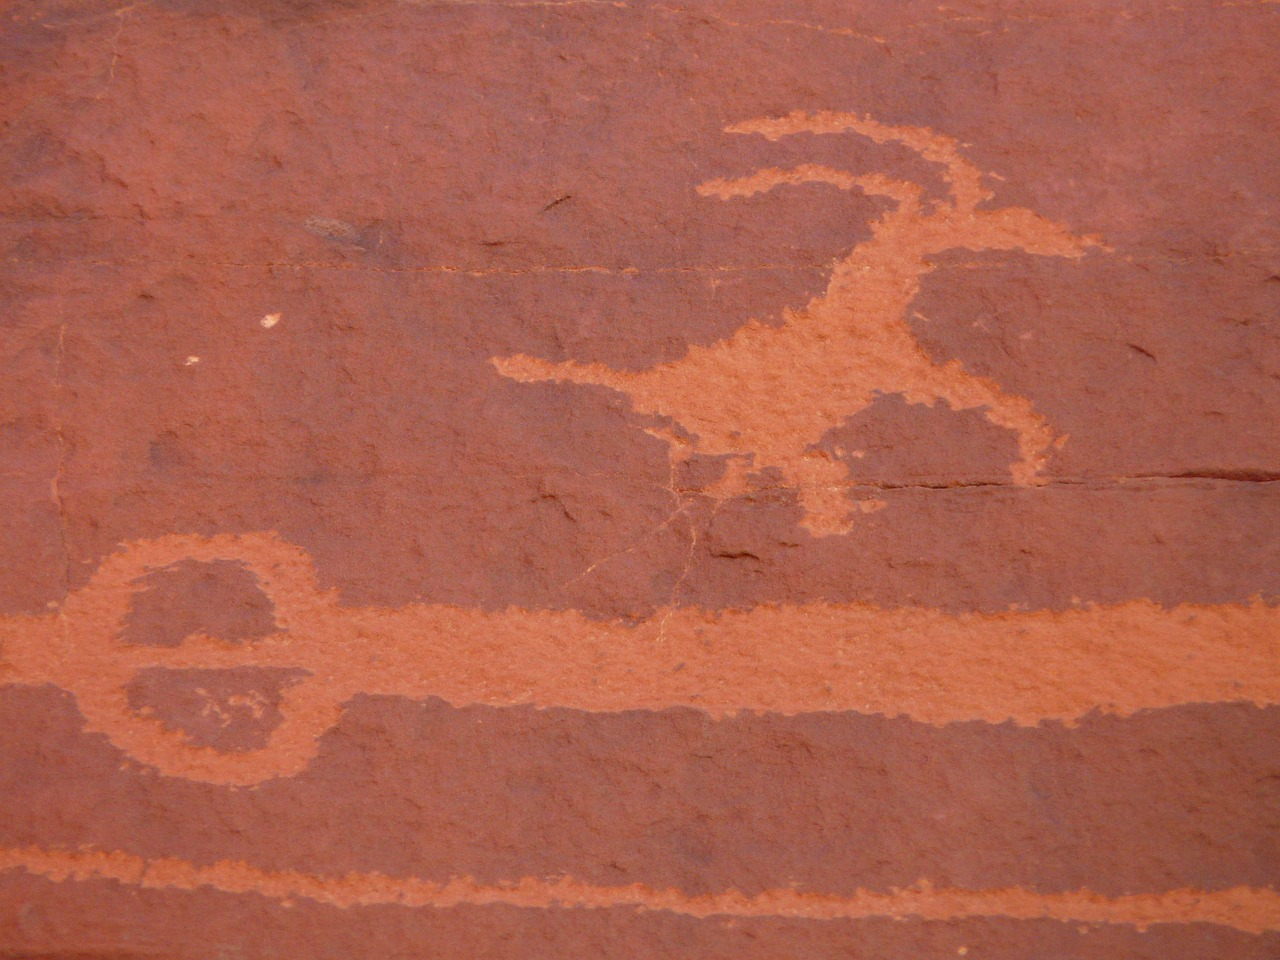 rock painting,rock carving,valley of fire,valley of fire national park,national park,painting,drawing,prehistoric,indian basket makers,anasazi indians,anasazi,free pictures, free photos, free images, royalty free, free illustrations, public domain